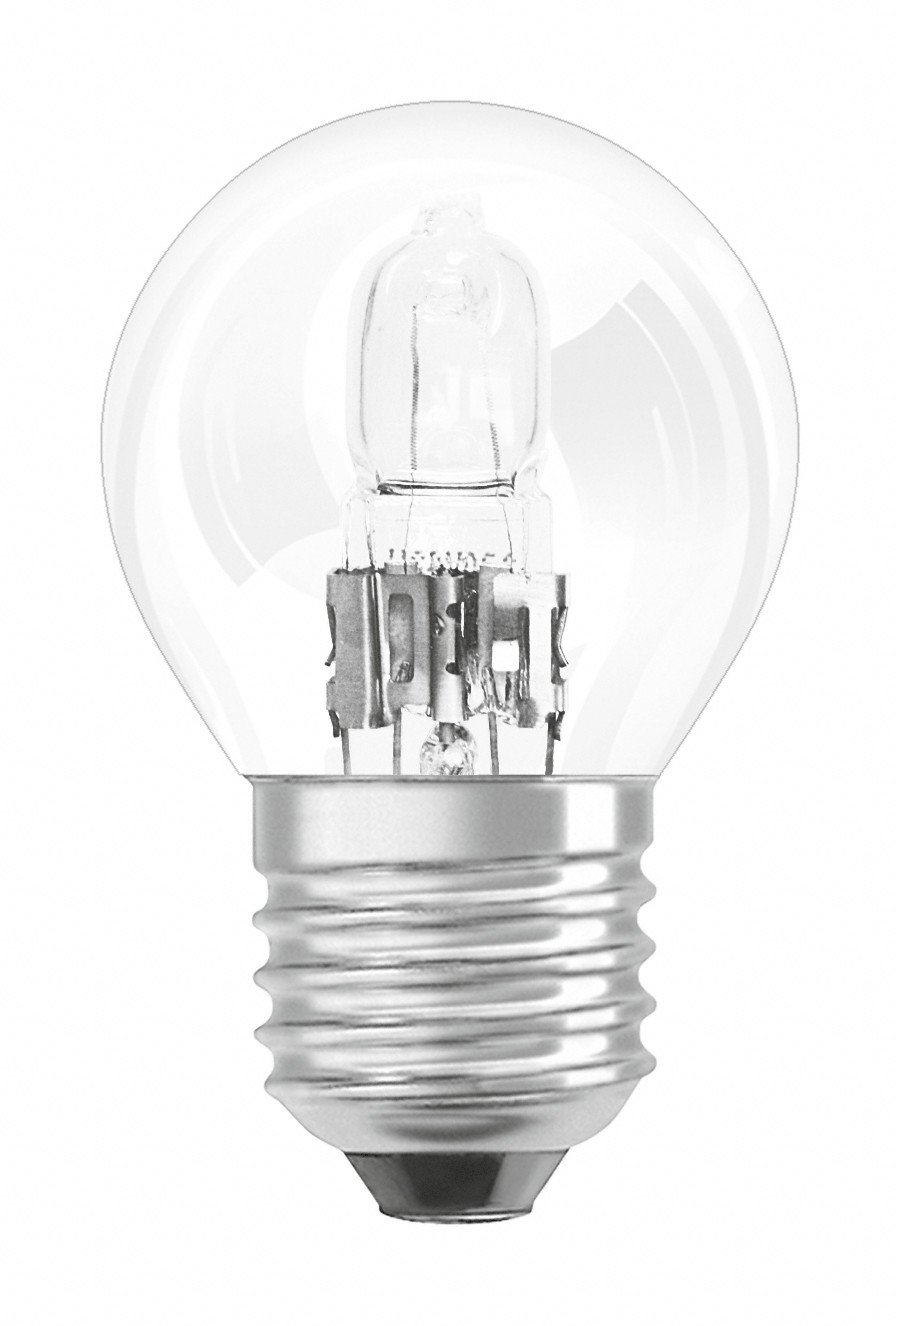 Osram Halogen-Lamp/Classic P/E27-Socket/Dimmable/20 W - 25 W Replacement/Warm White, 2700 K